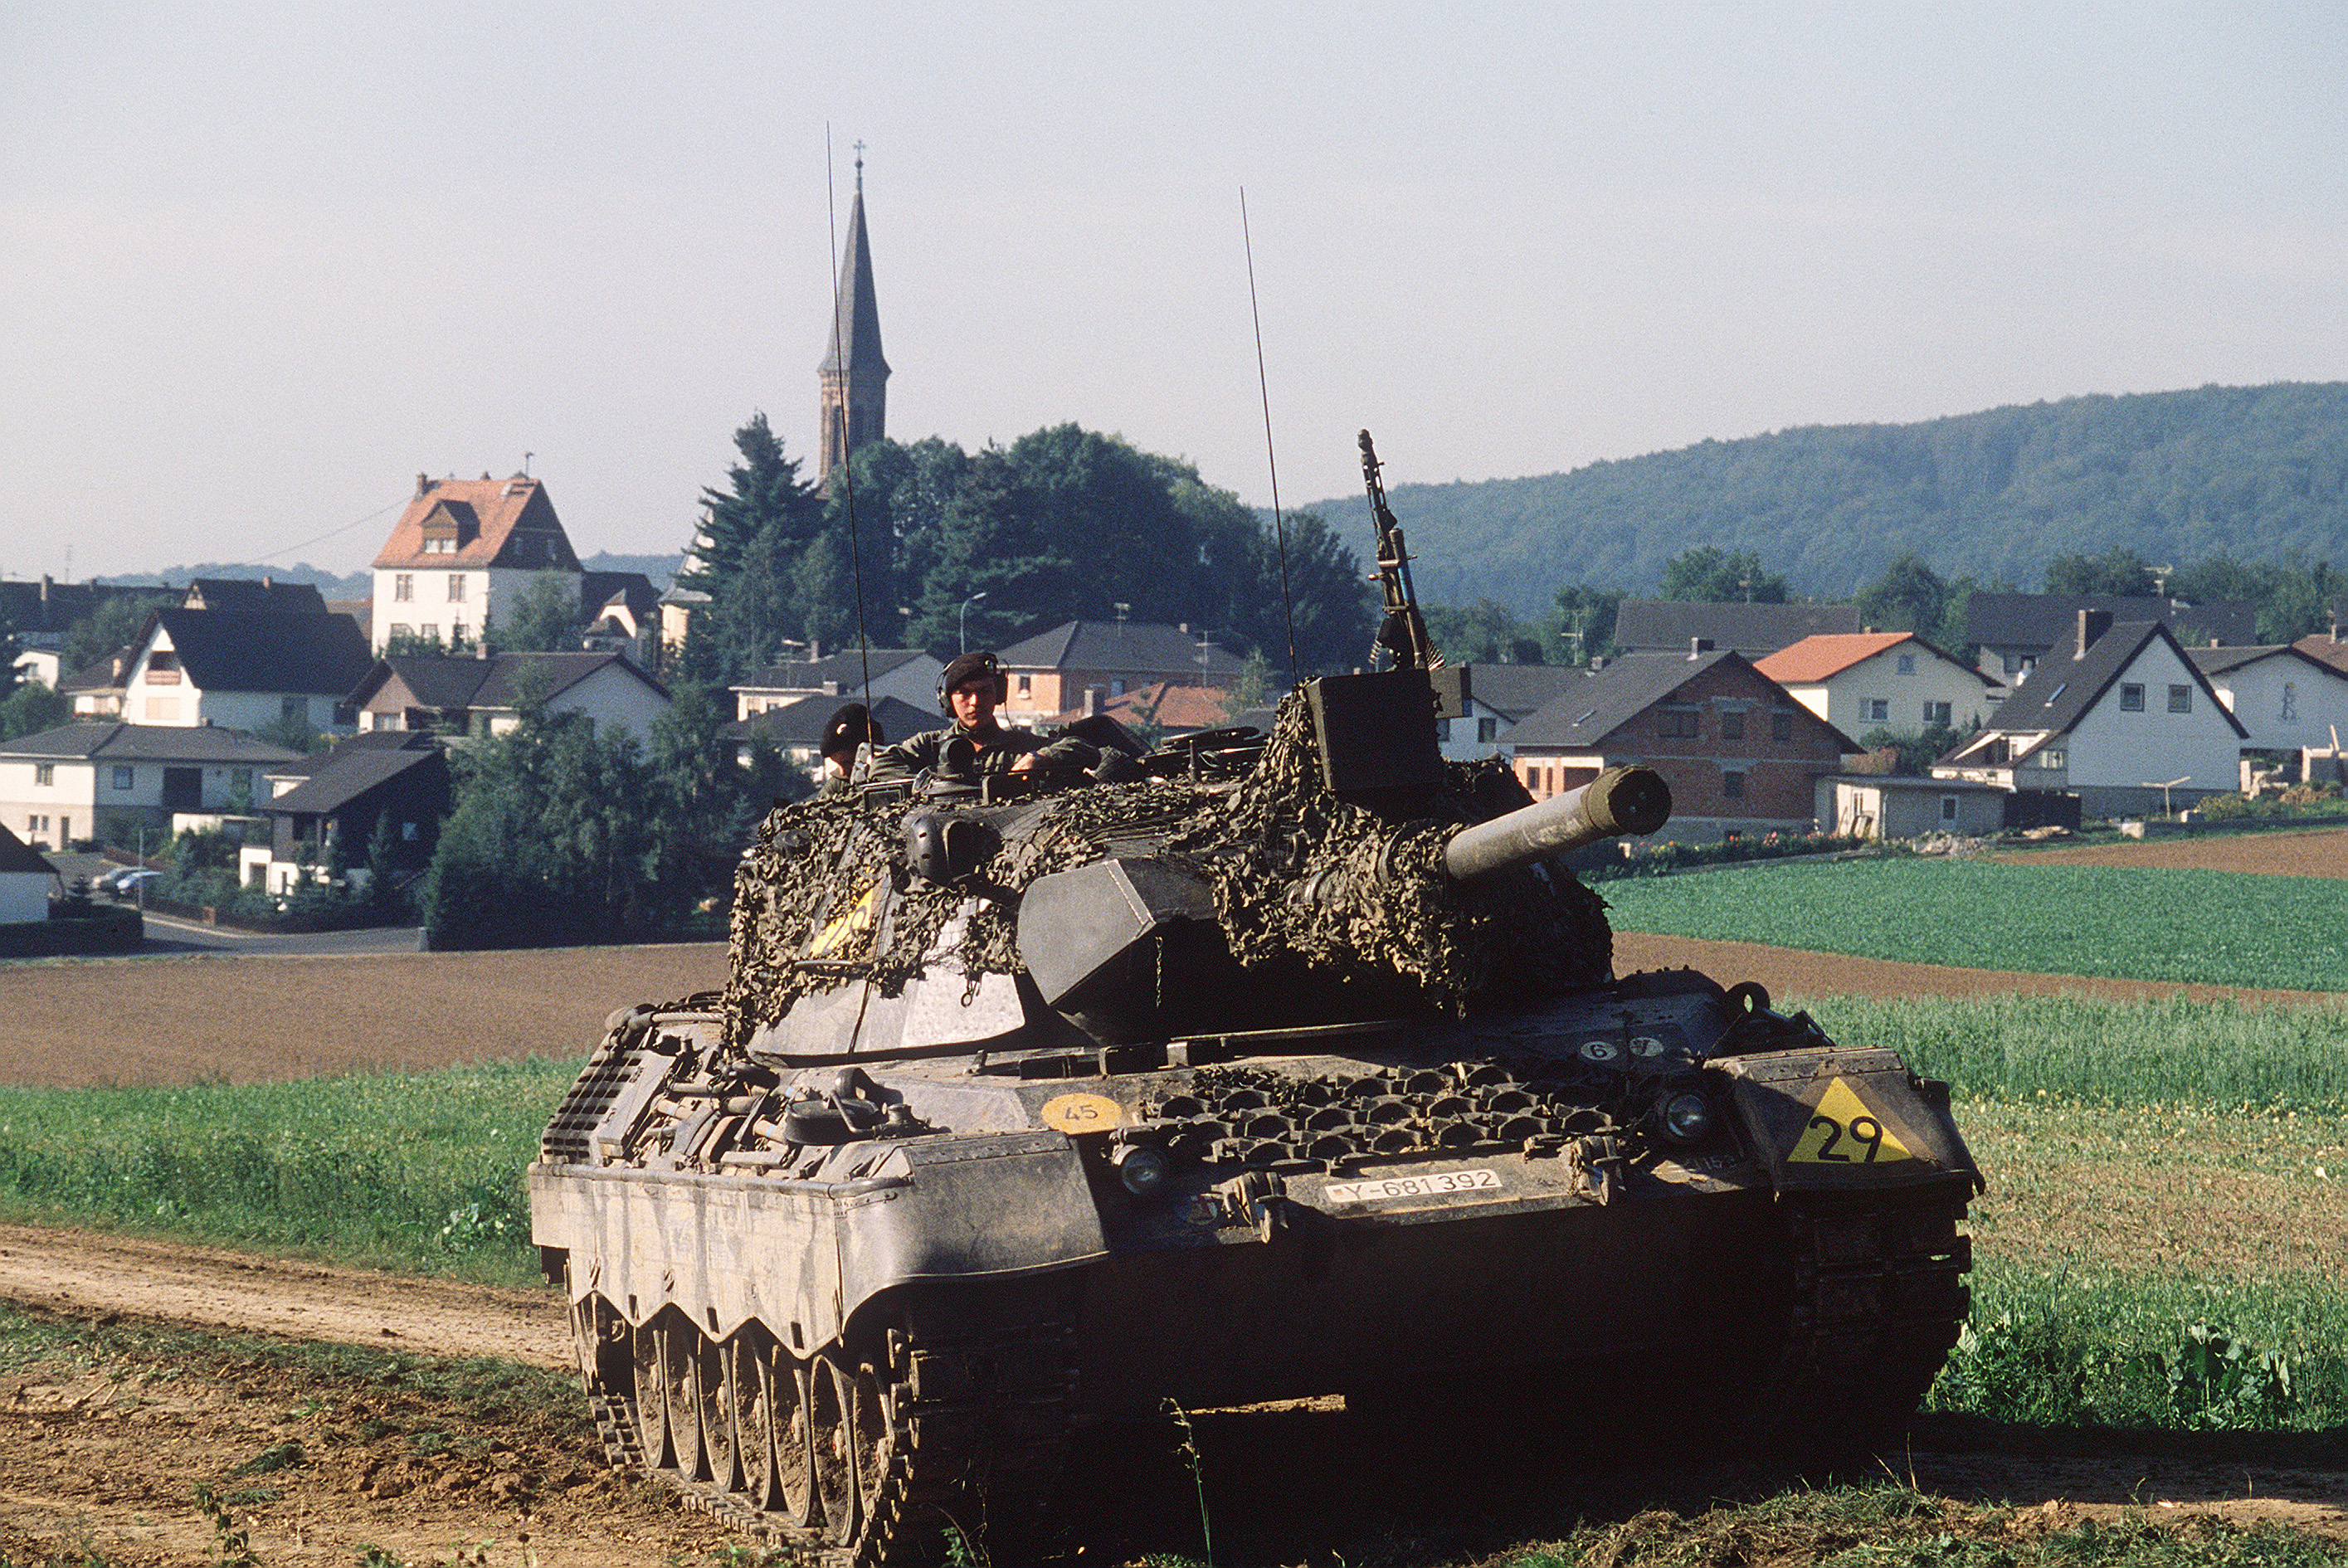 http://upload.wikimedia.org/wikipedia/commons/3/3c/Leopard1_Bundeswehr_1983.jpg